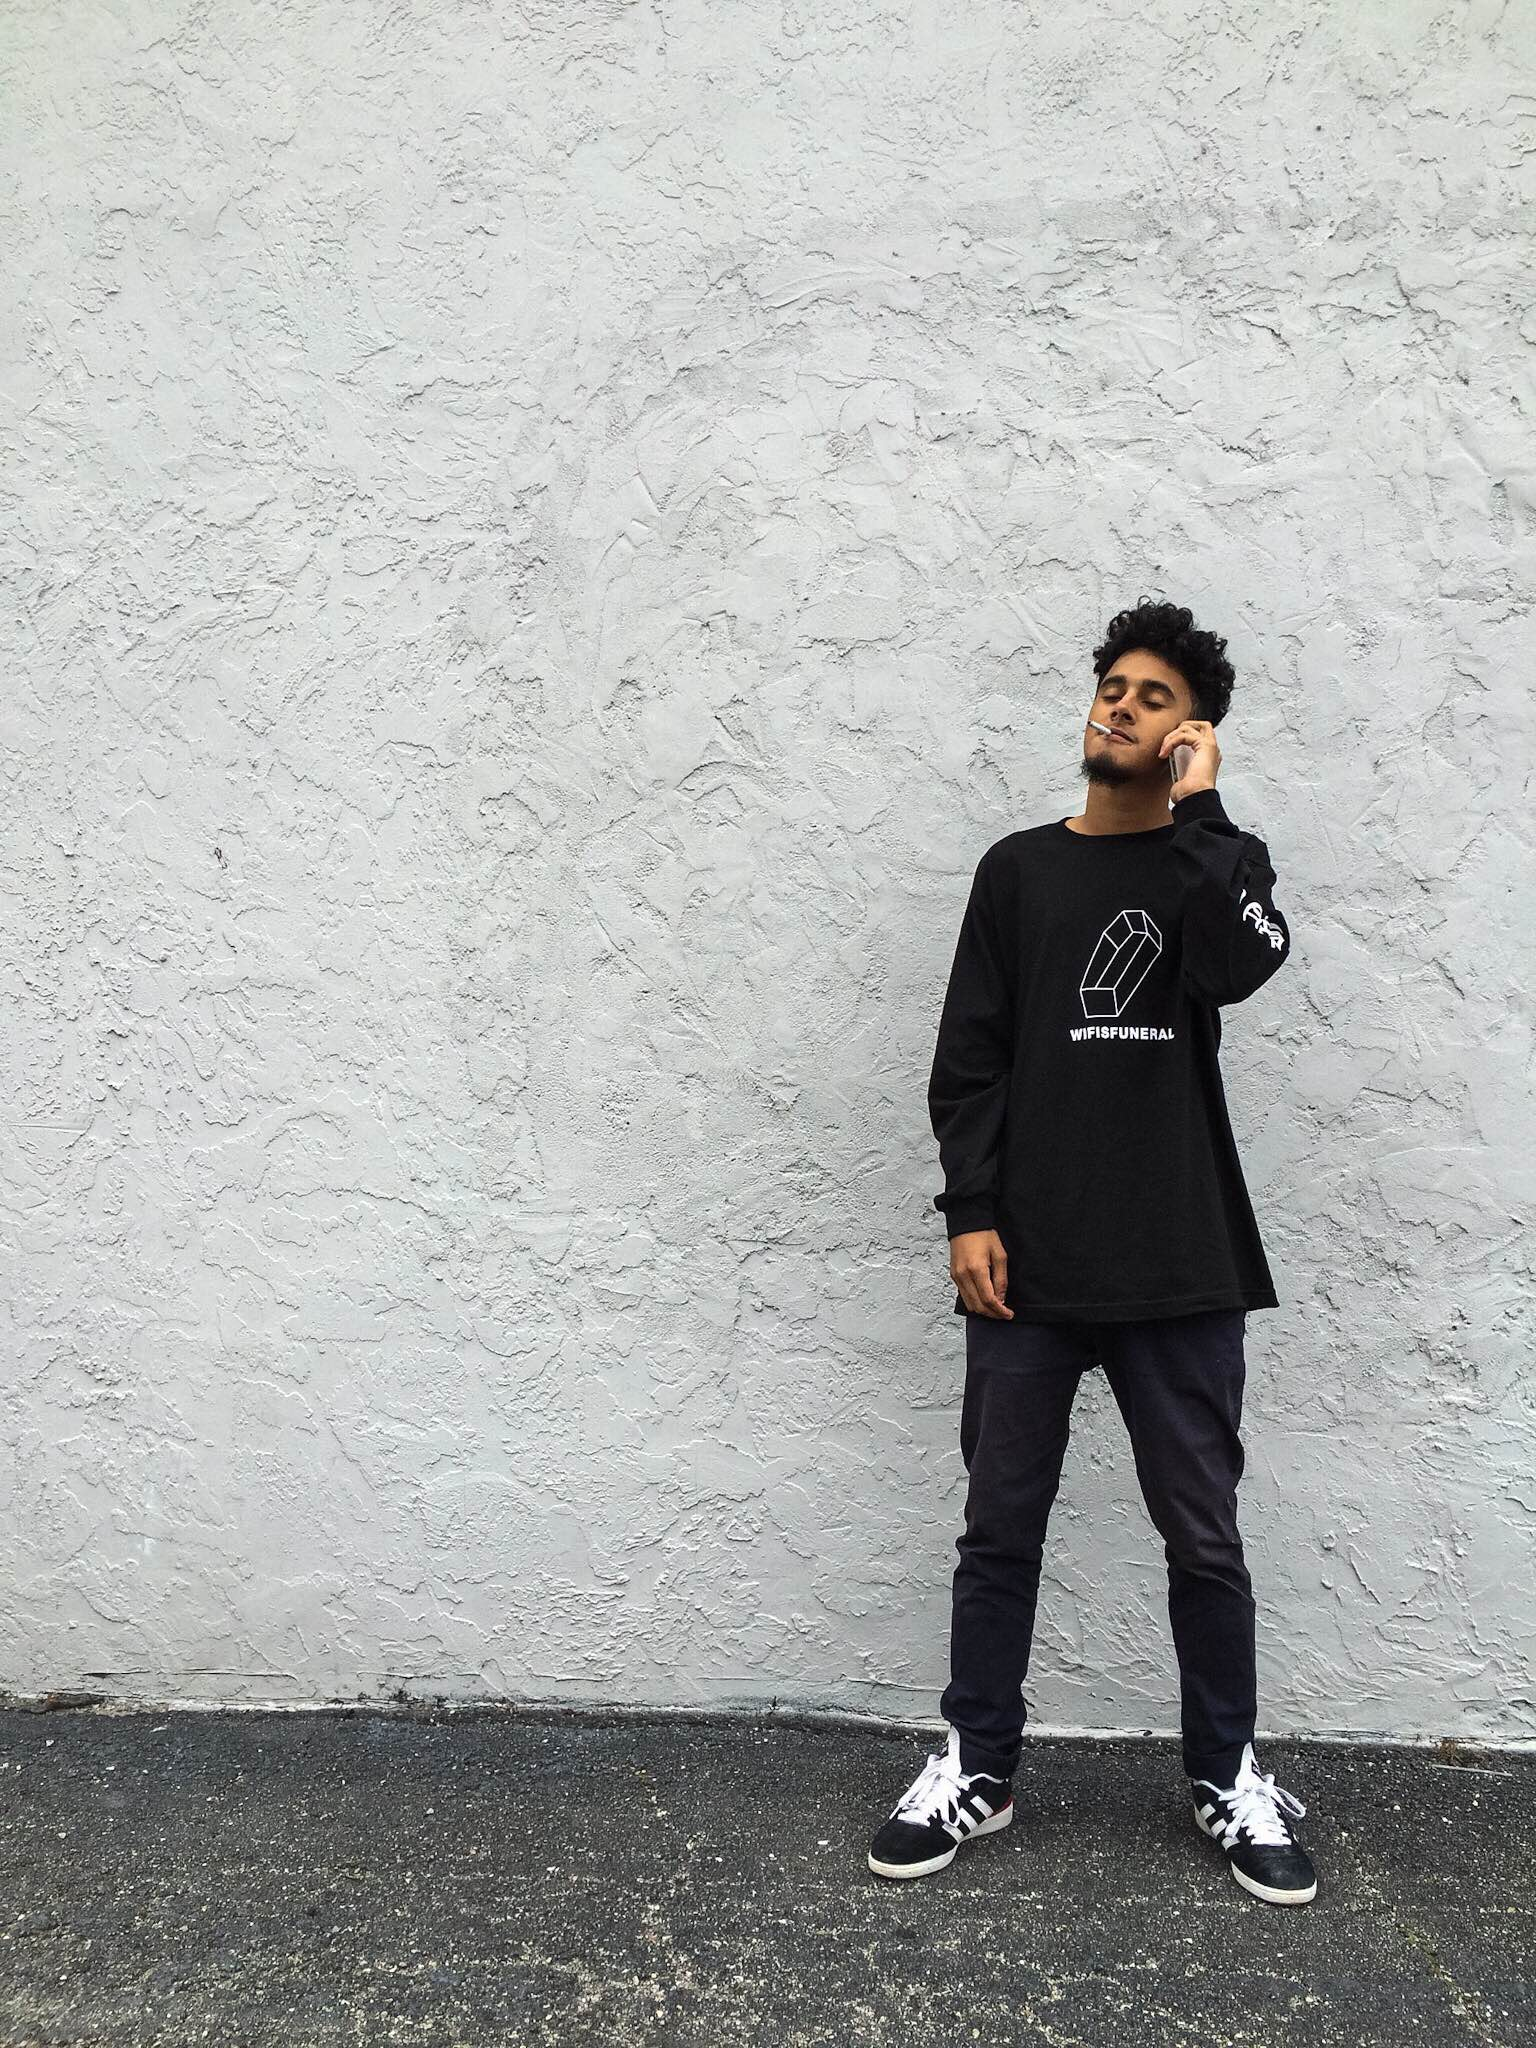 1536x2048 FORDIRTYBYDIRTY FW 15 LOOKBOOK FT @WIFISFUNERAL – NRSGALLERY